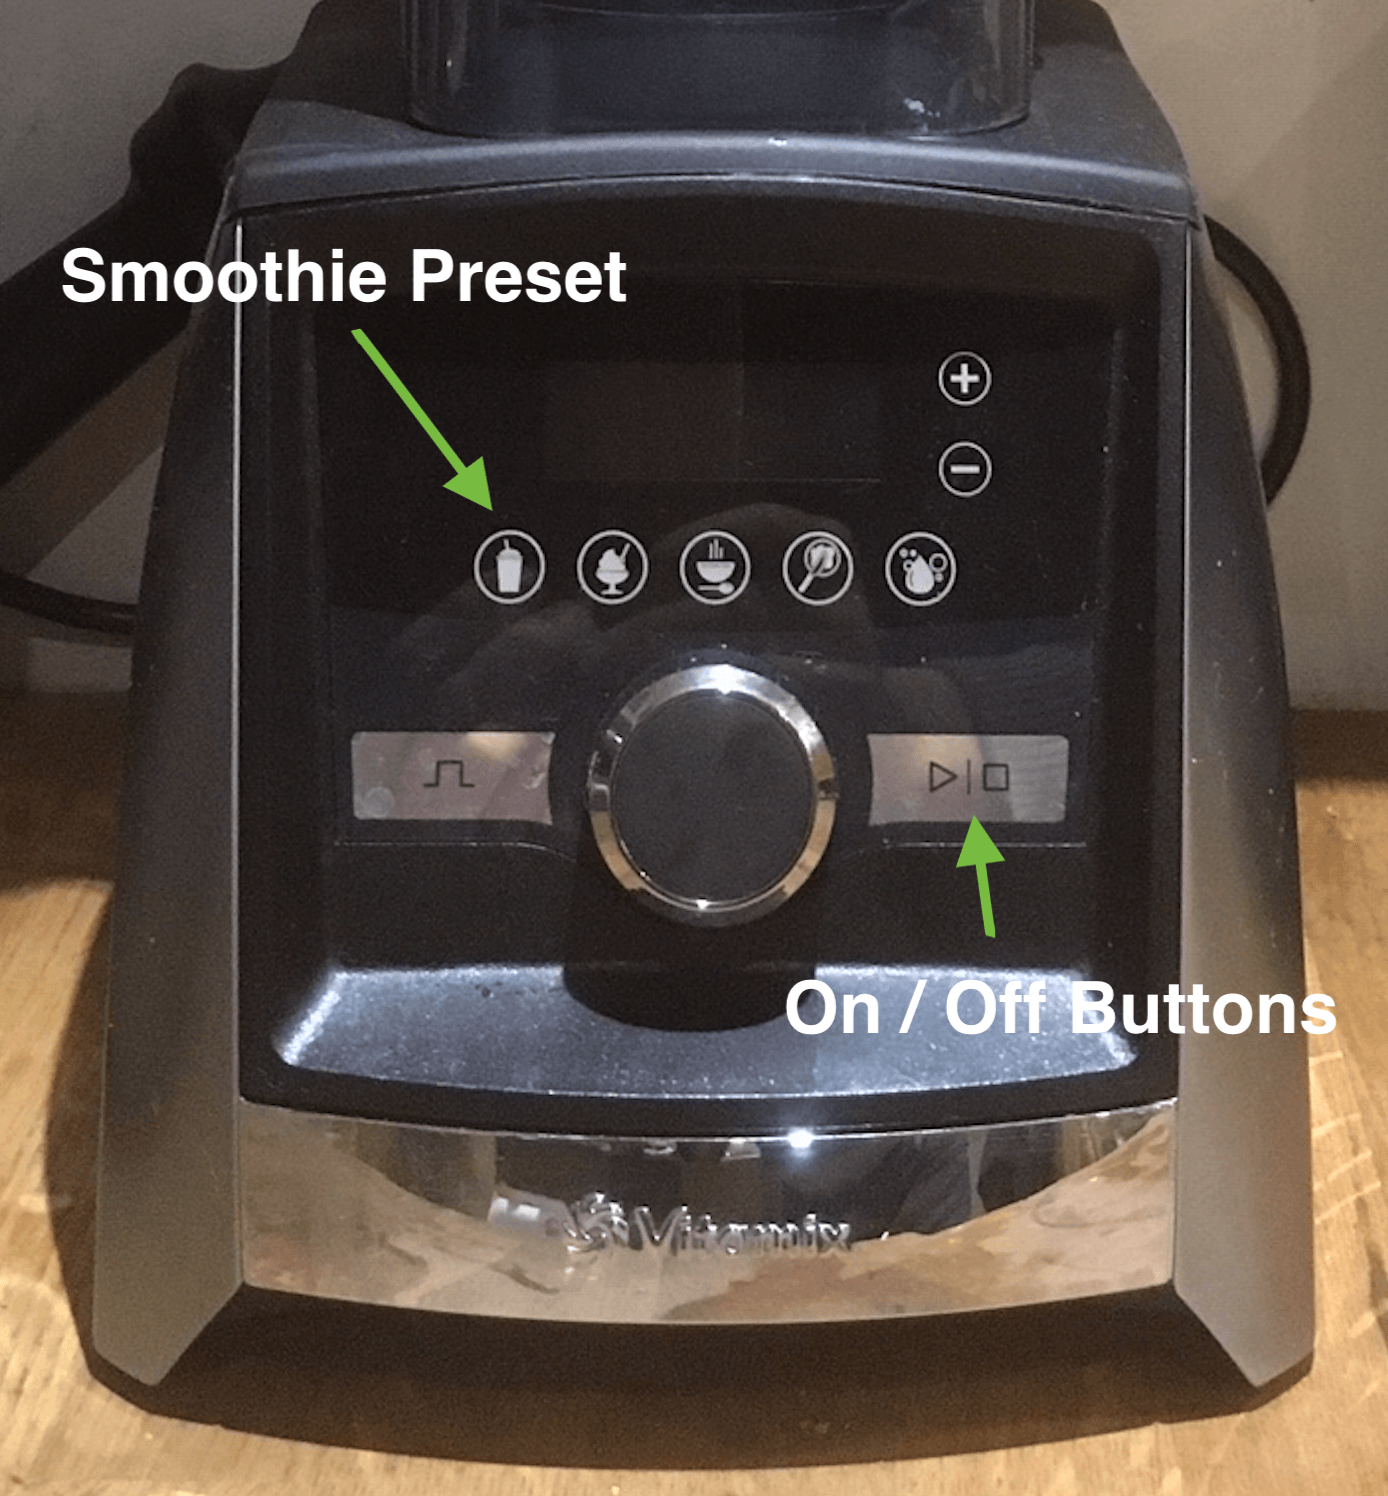 Smootjie preset on Vitamix A3500